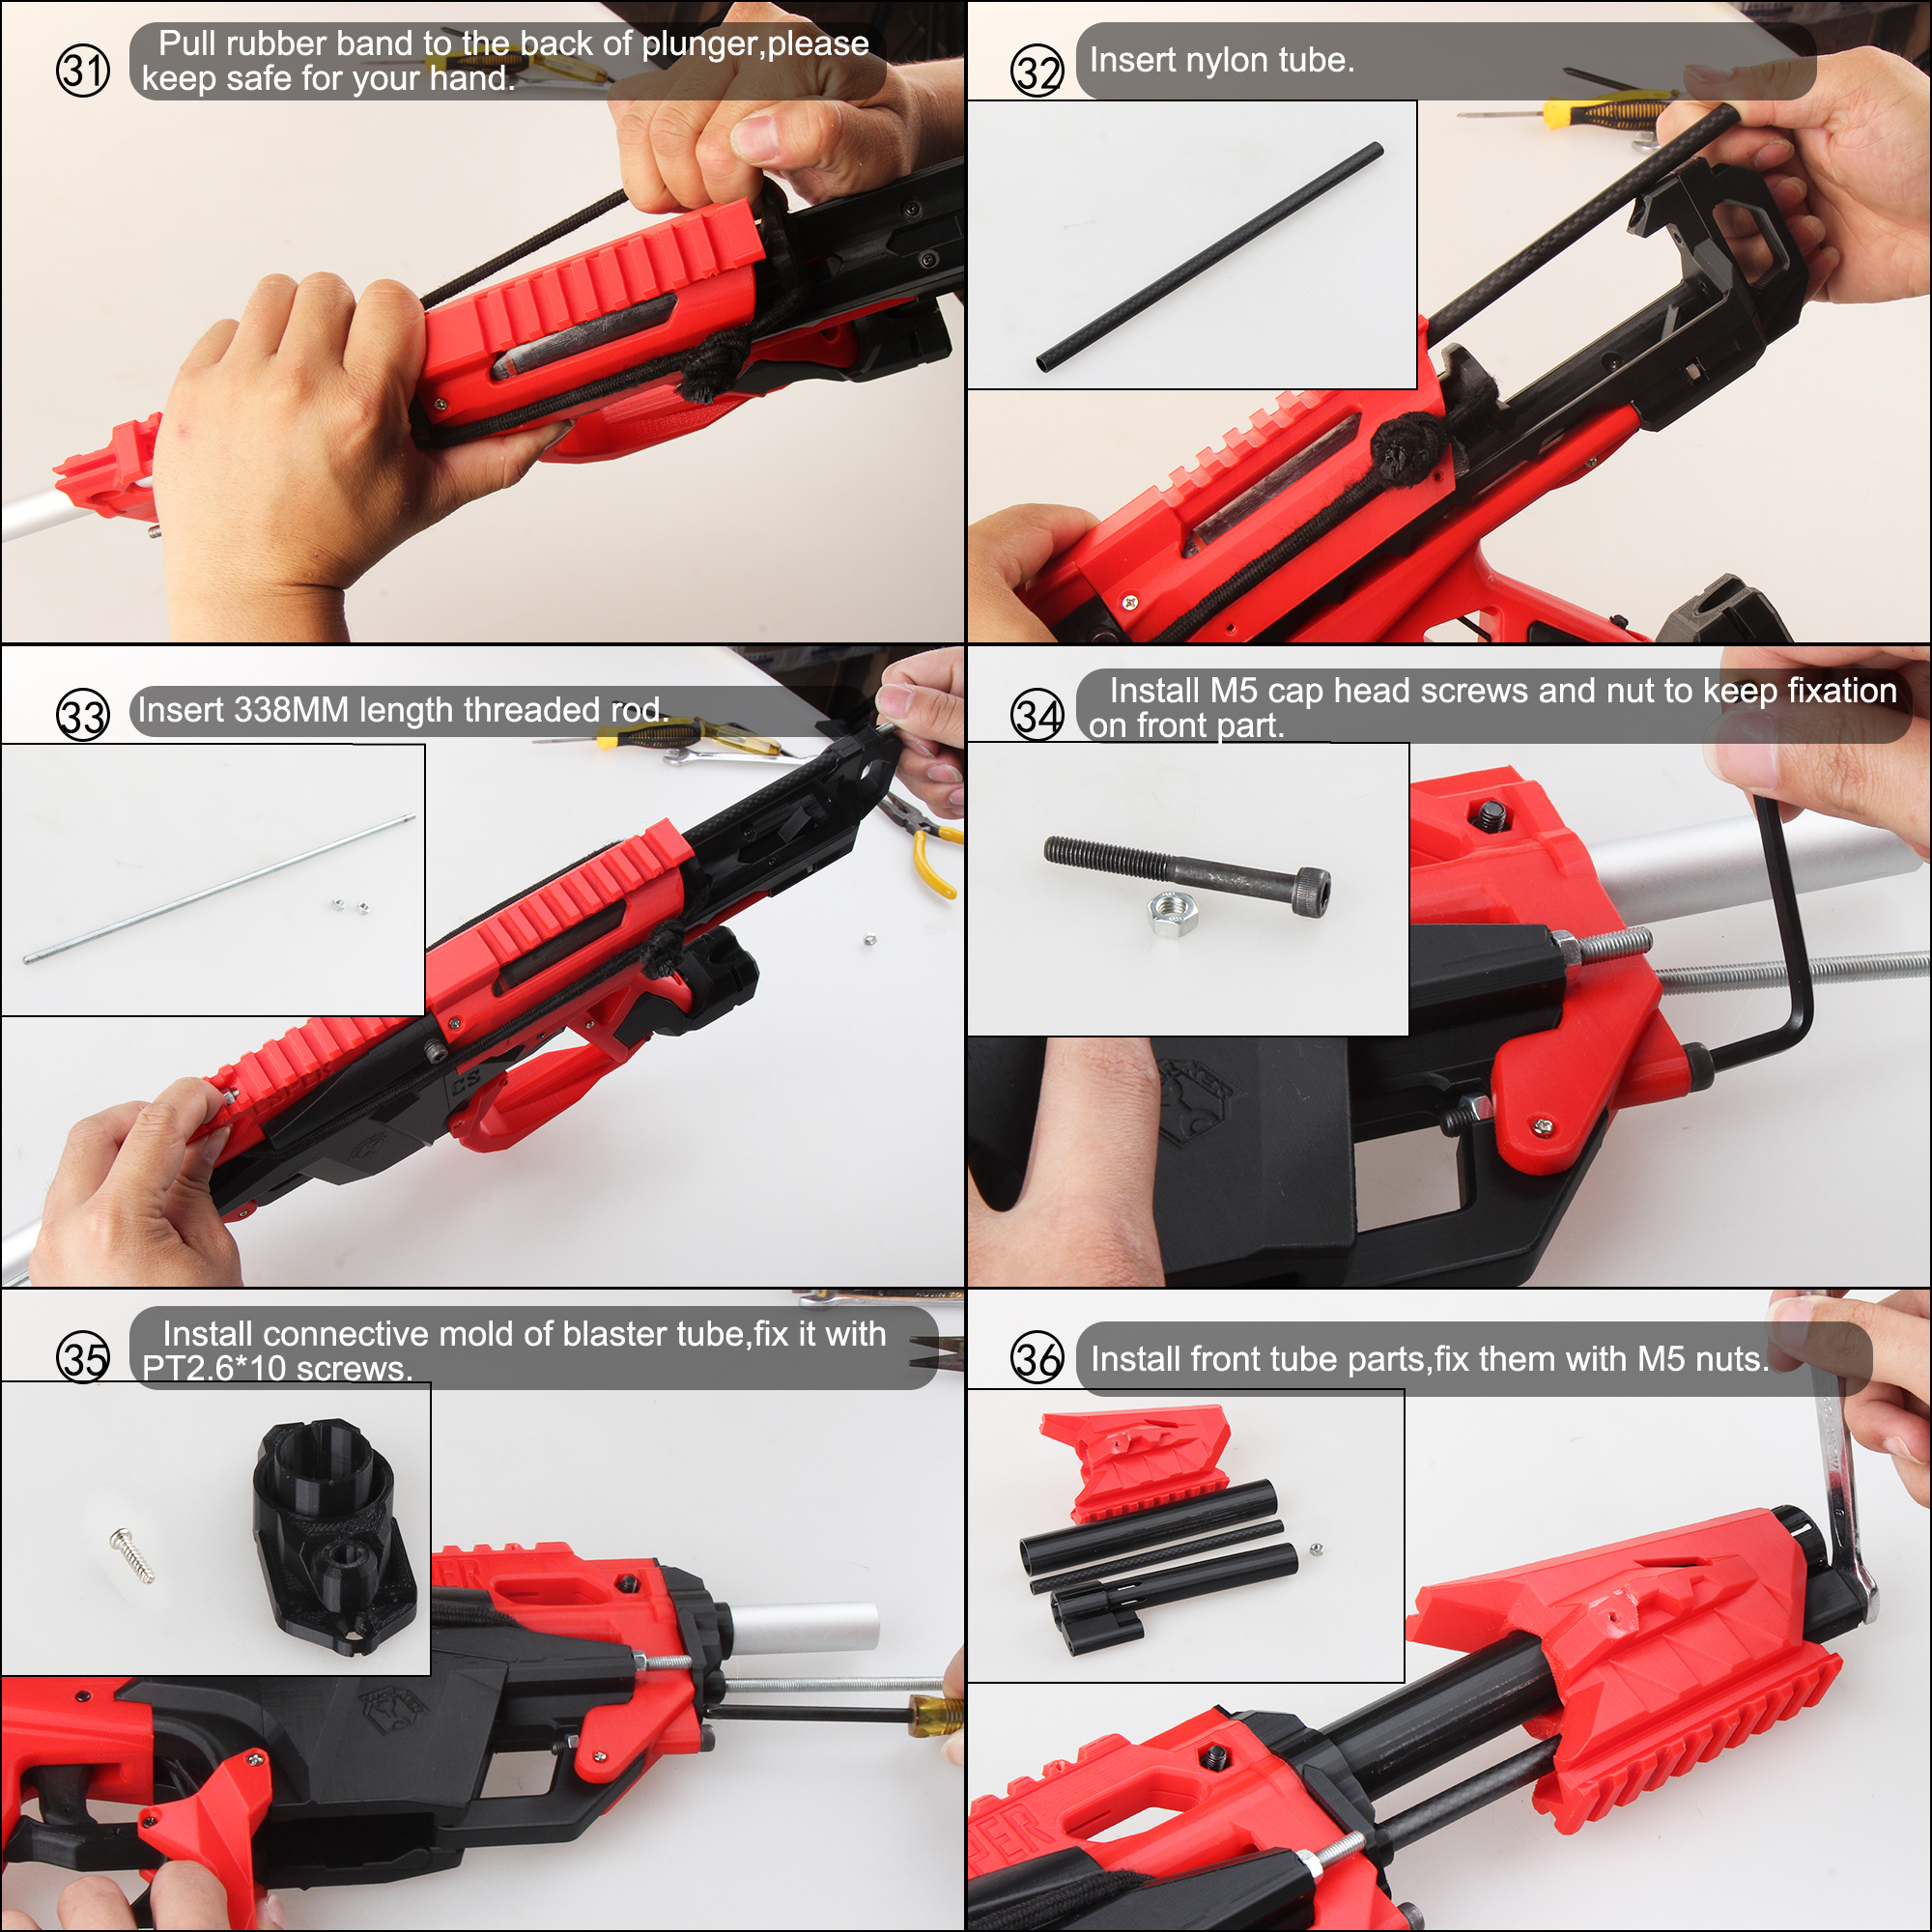 Worker F10555 Esper 3D printed Blaster Model B Assembly Instructions